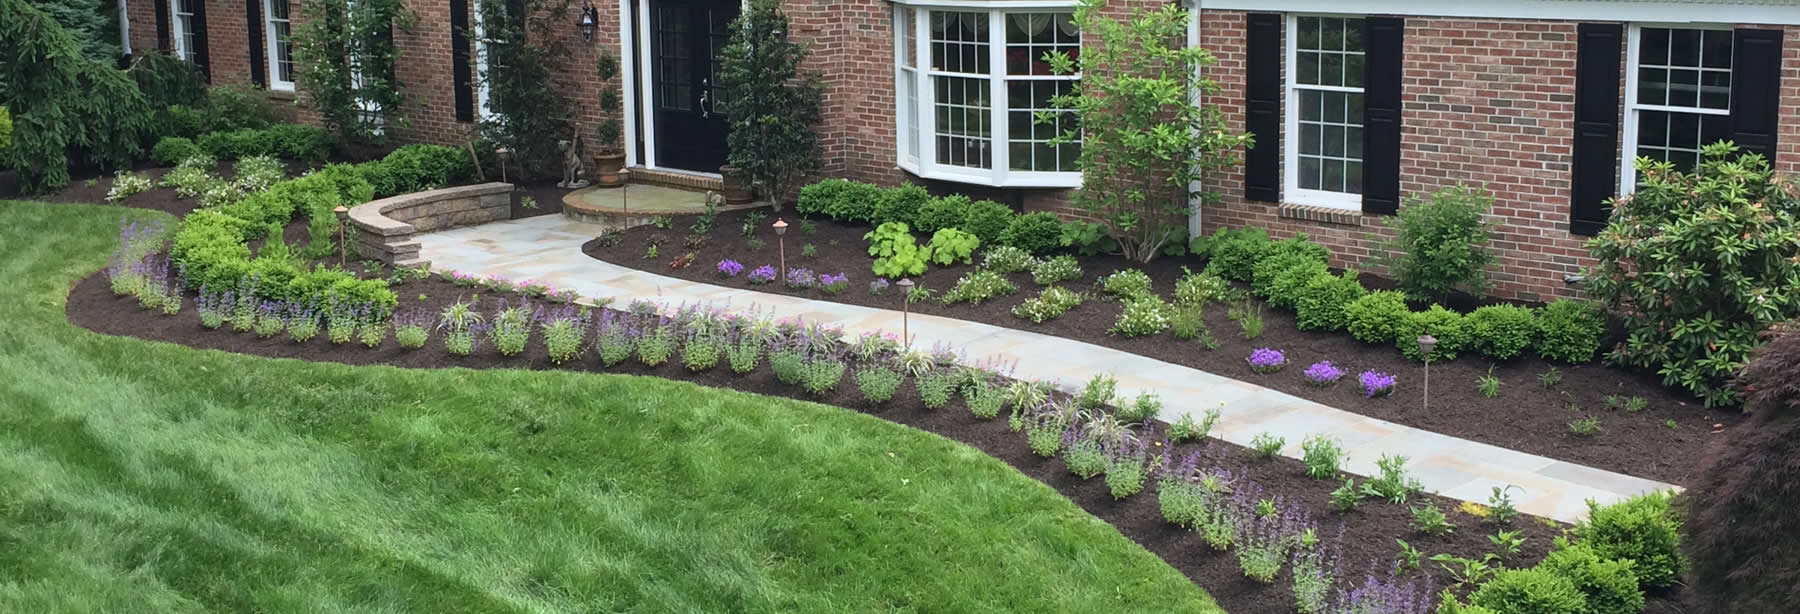 Creative and Professional Landscaping